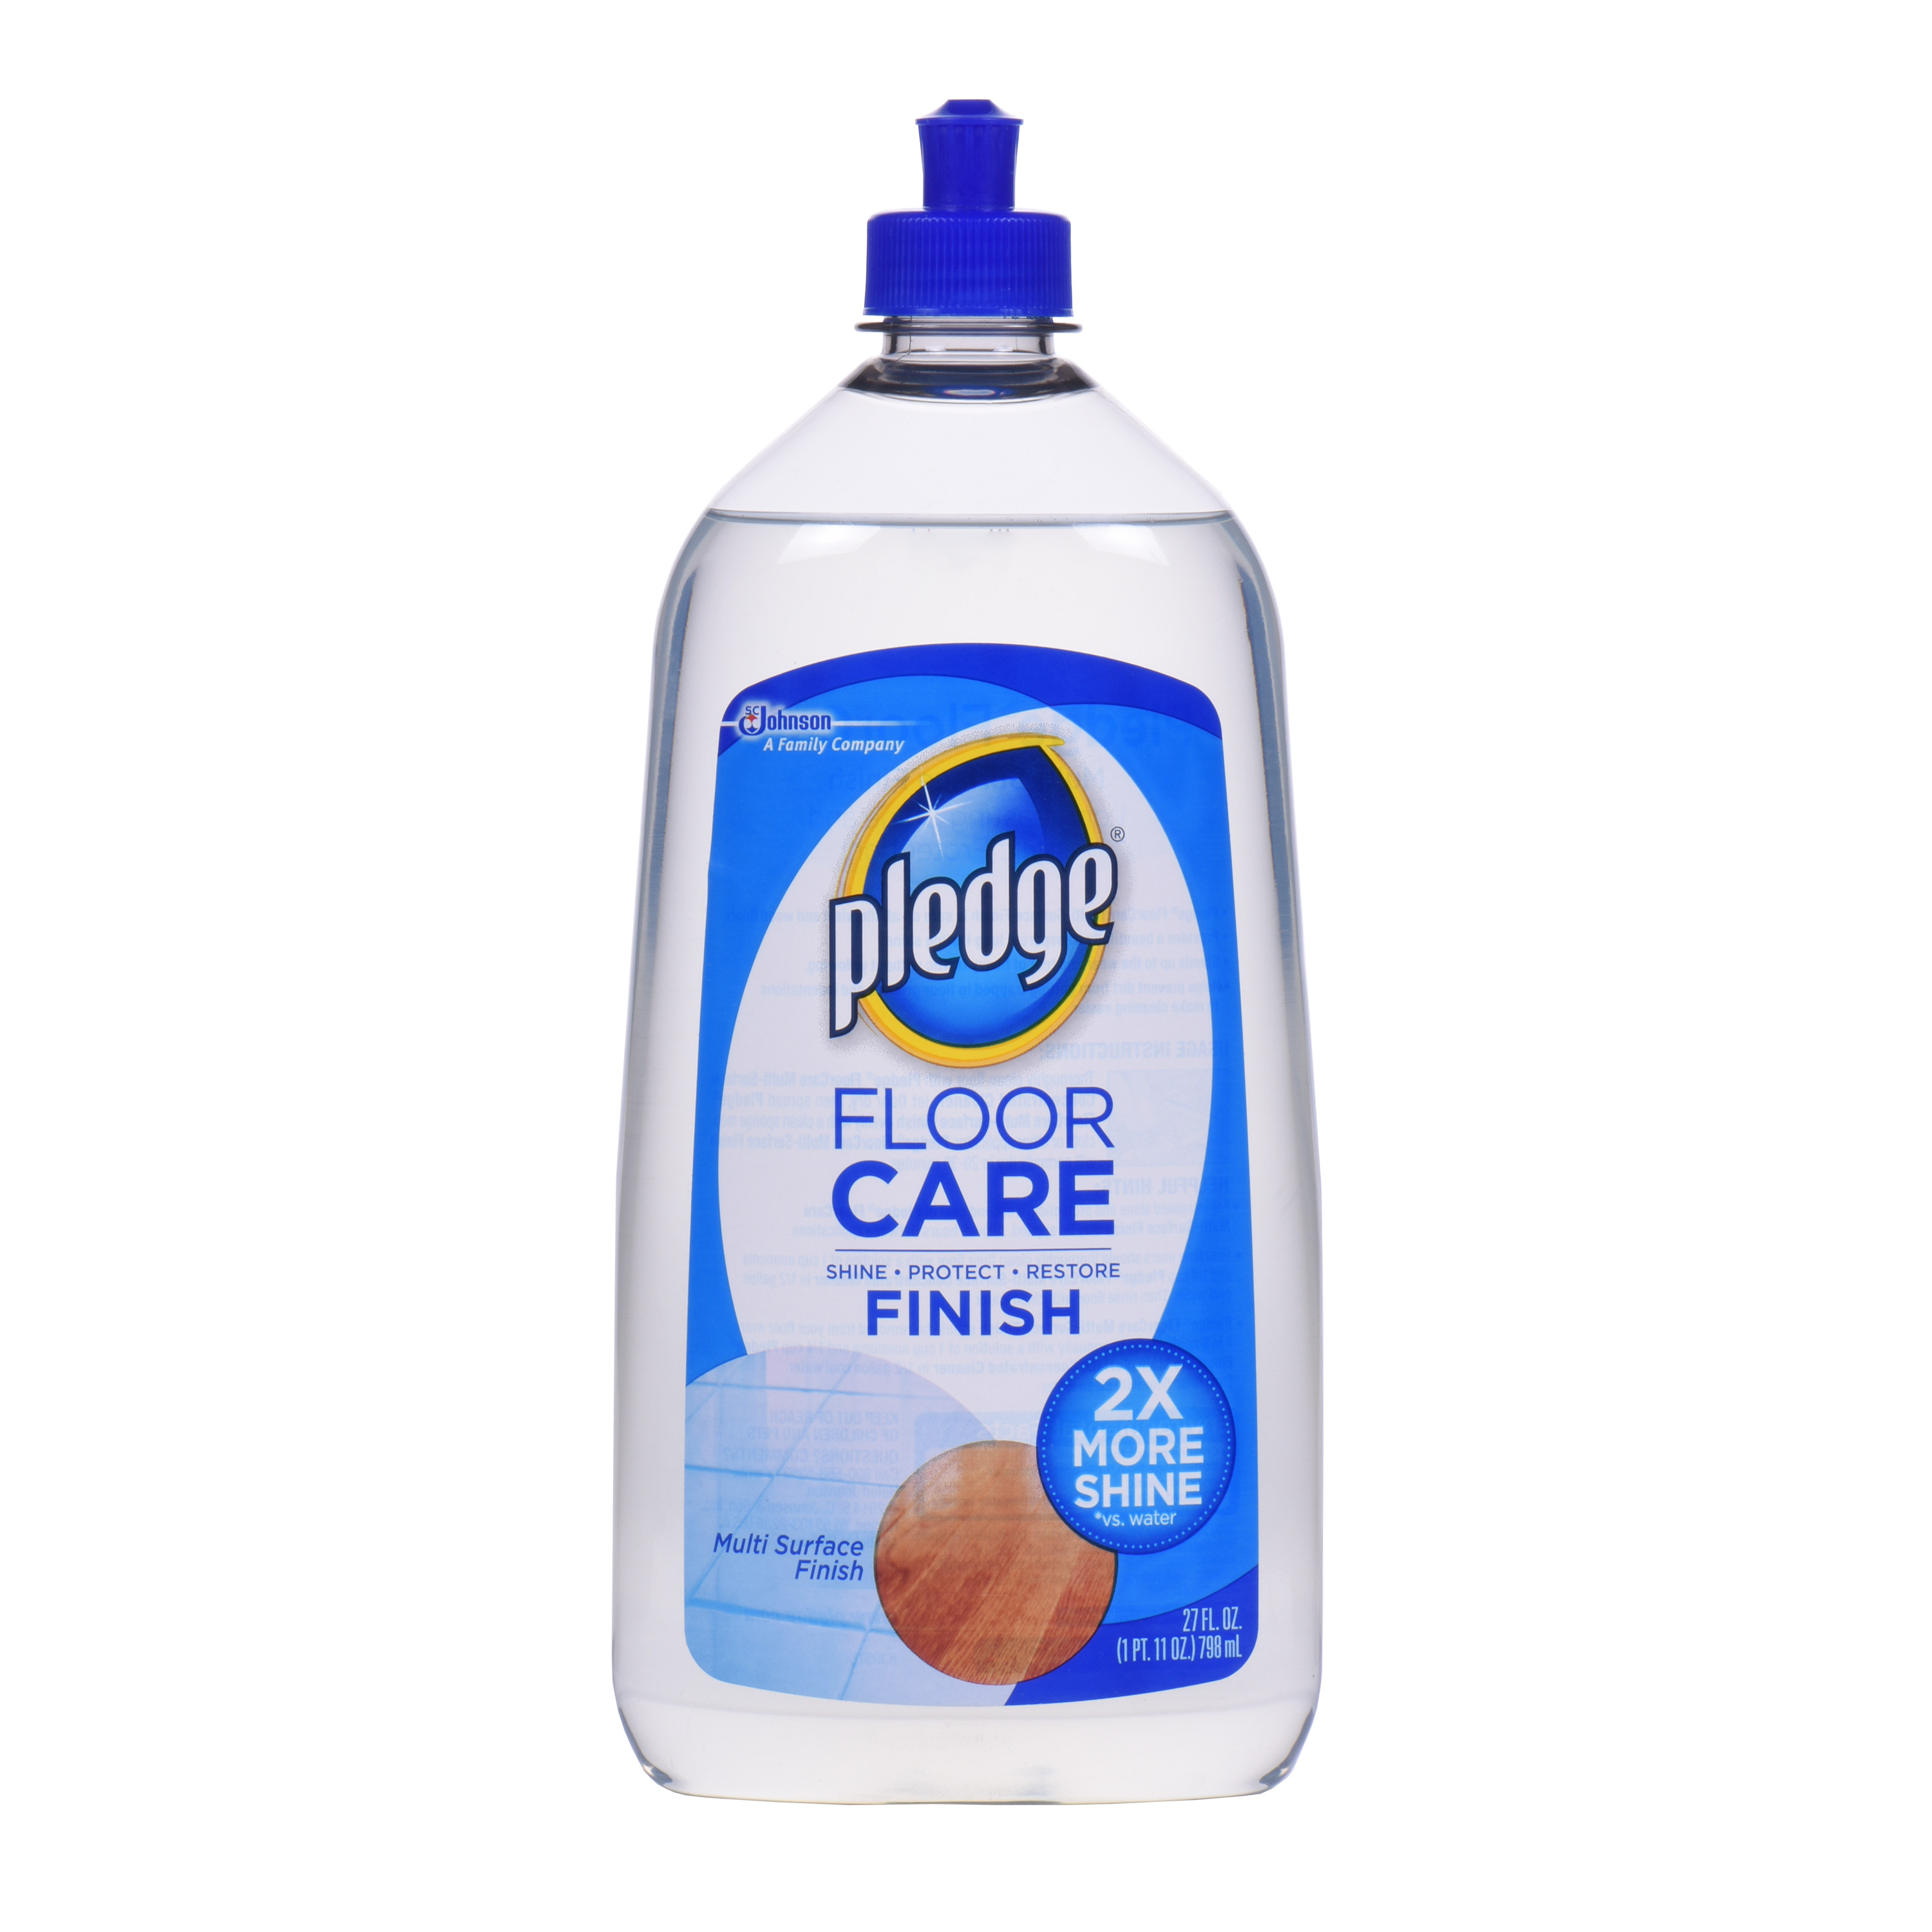 pledge floor care pledge with future shine floor finish 27oz walmart 31415